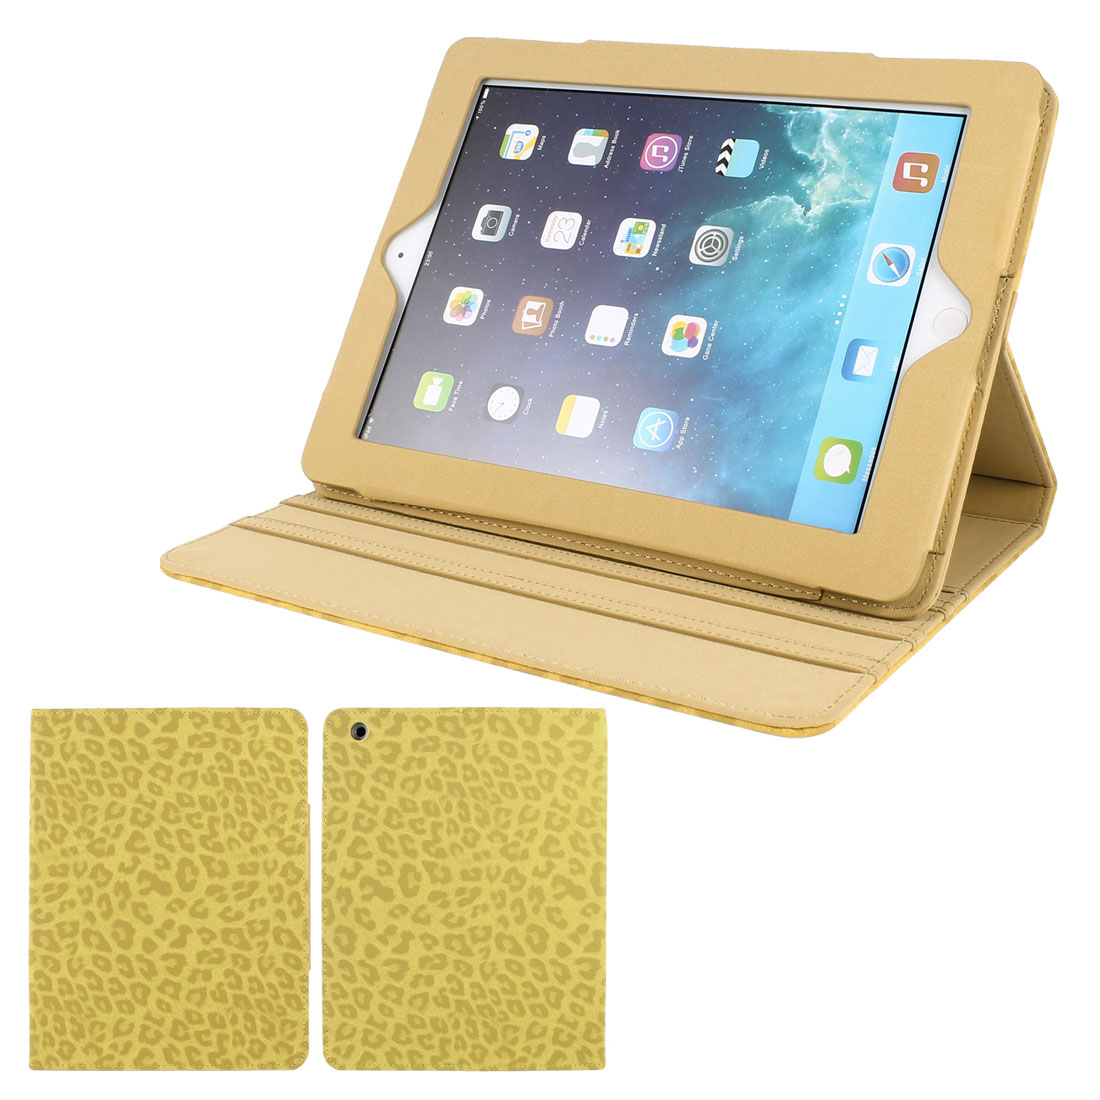 Yellow Textured Leopard Print PU Leather Folio Stand Case Cover Skin for iPad 2 3 4